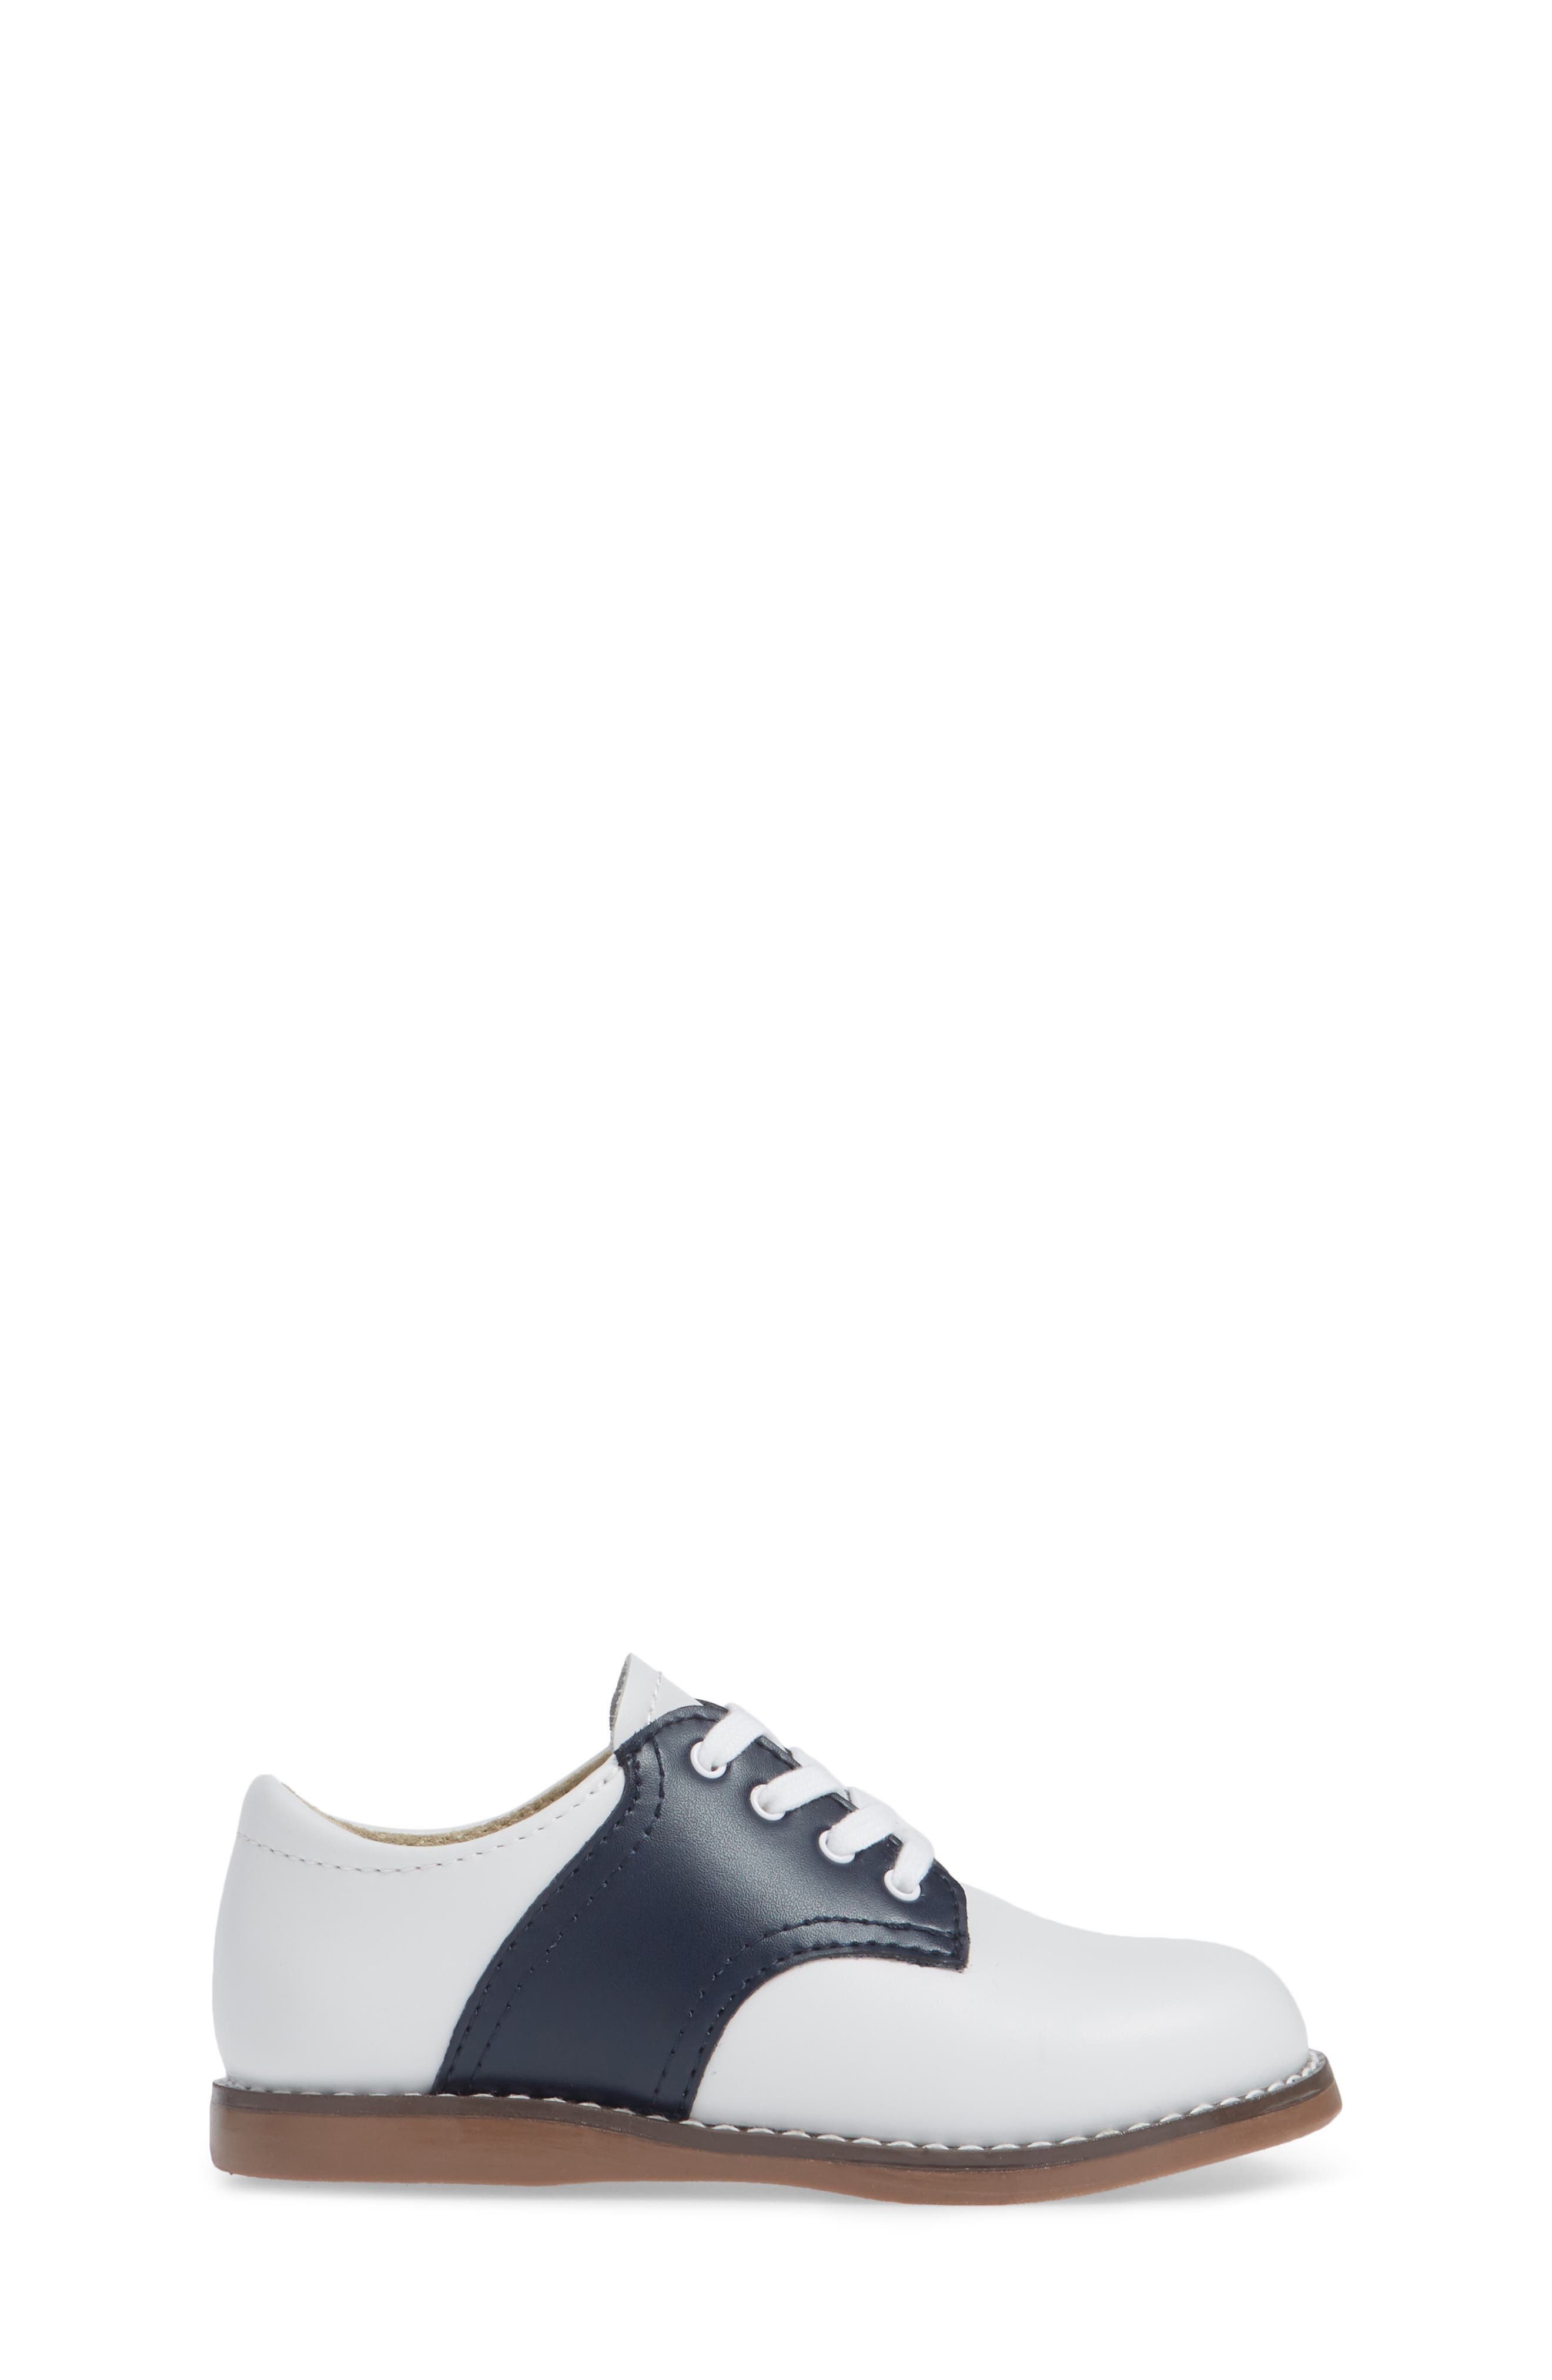 FOOTMATES,                             Cheer Oxford,                             Alternate thumbnail 3, color,                             WHITE/ NAVY